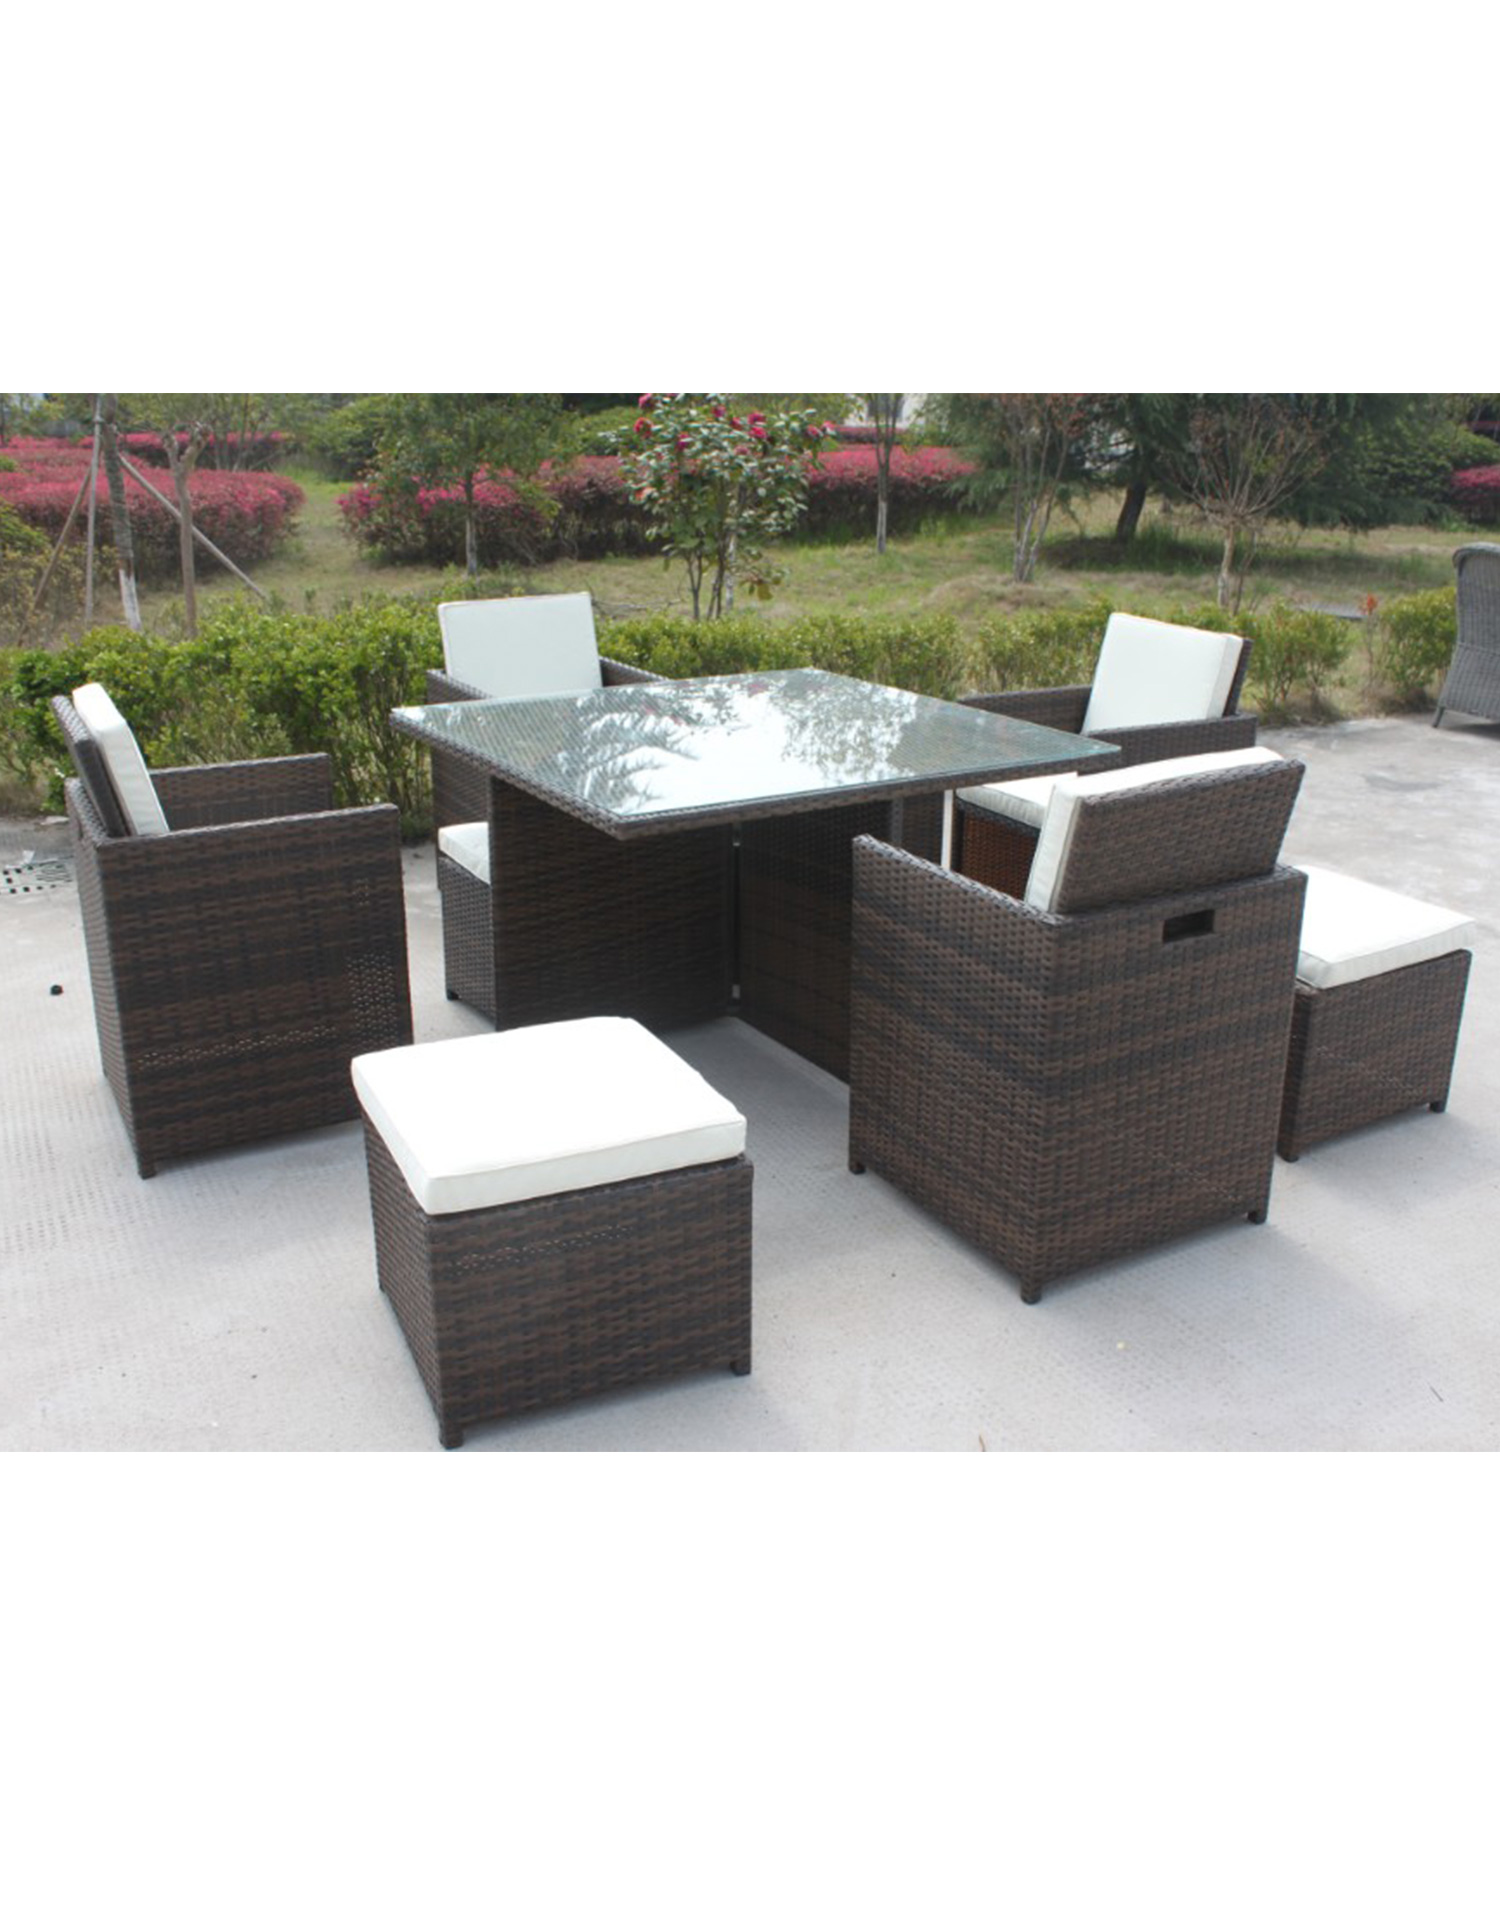 cube dining rattan gartenmoebel set. Black Bedroom Furniture Sets. Home Design Ideas